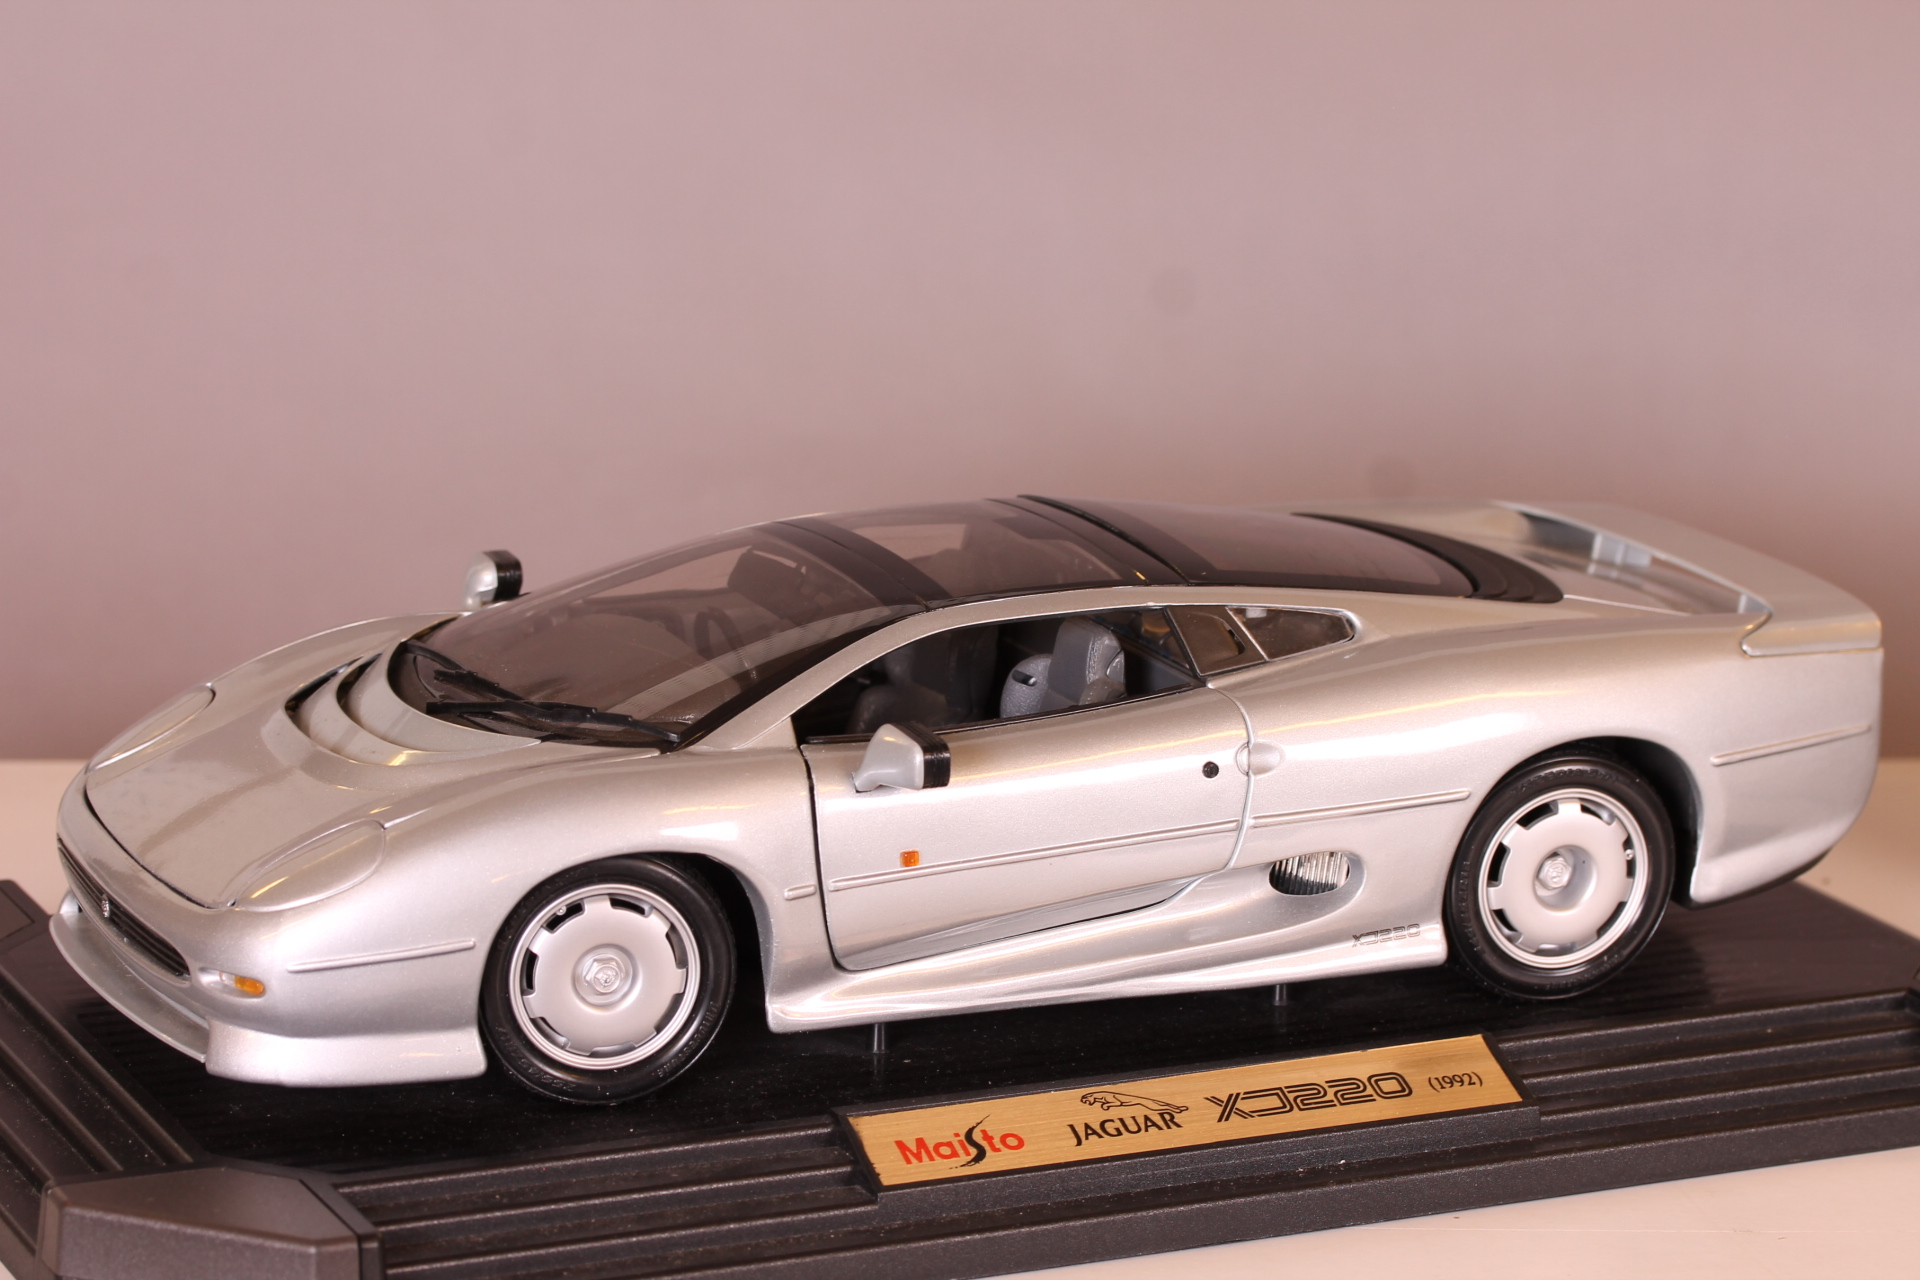 *1/12 Maisto Jaguar XJ220 silver (NO BOX)